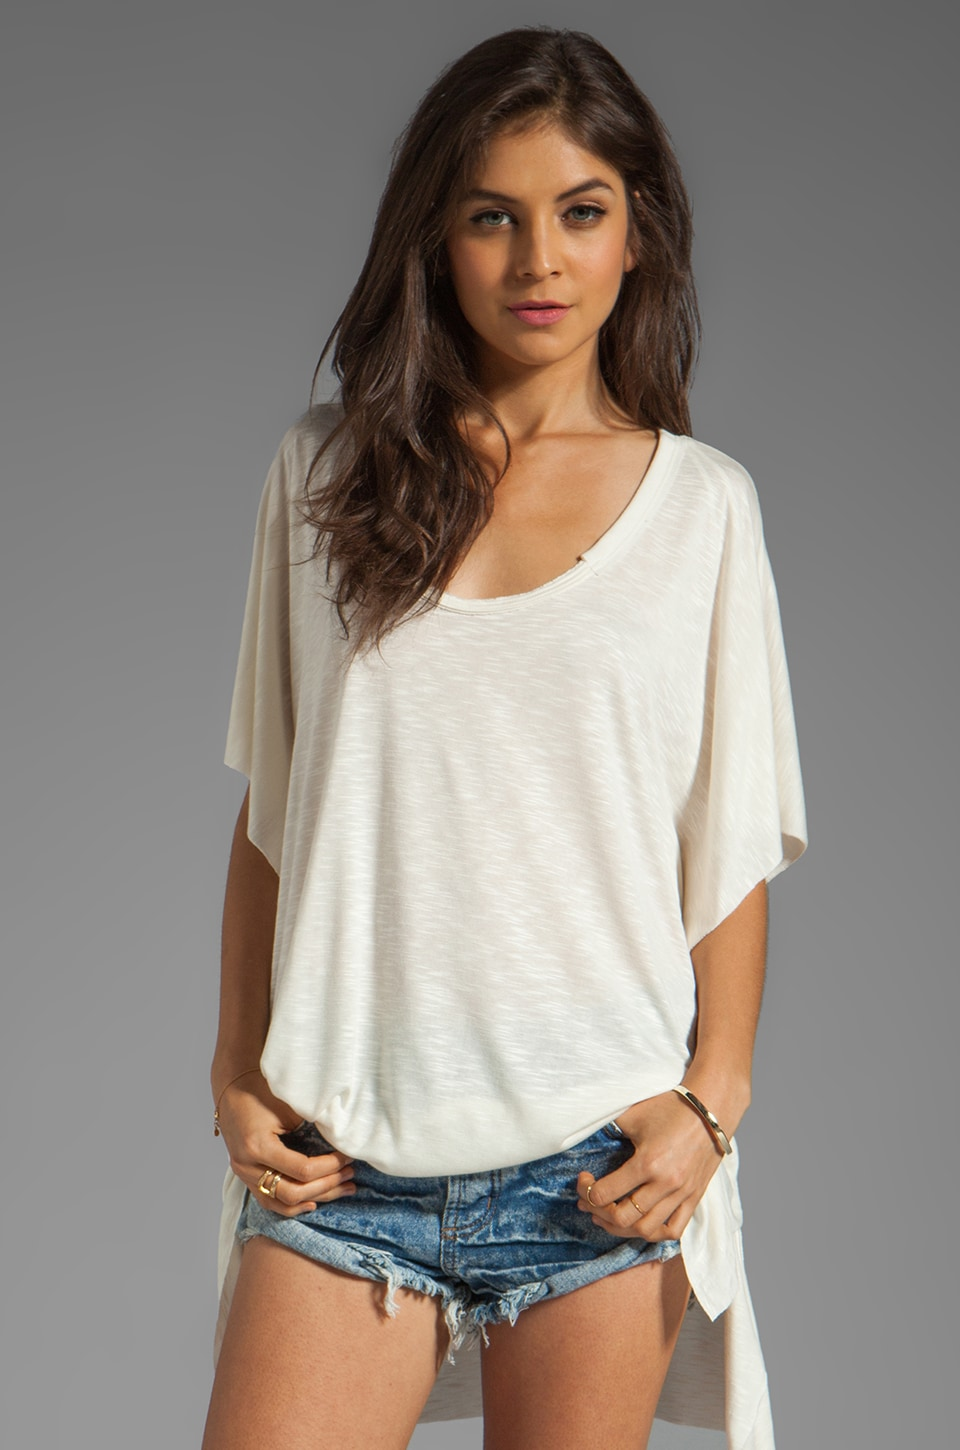 Free People Big Moment Tee in Cream